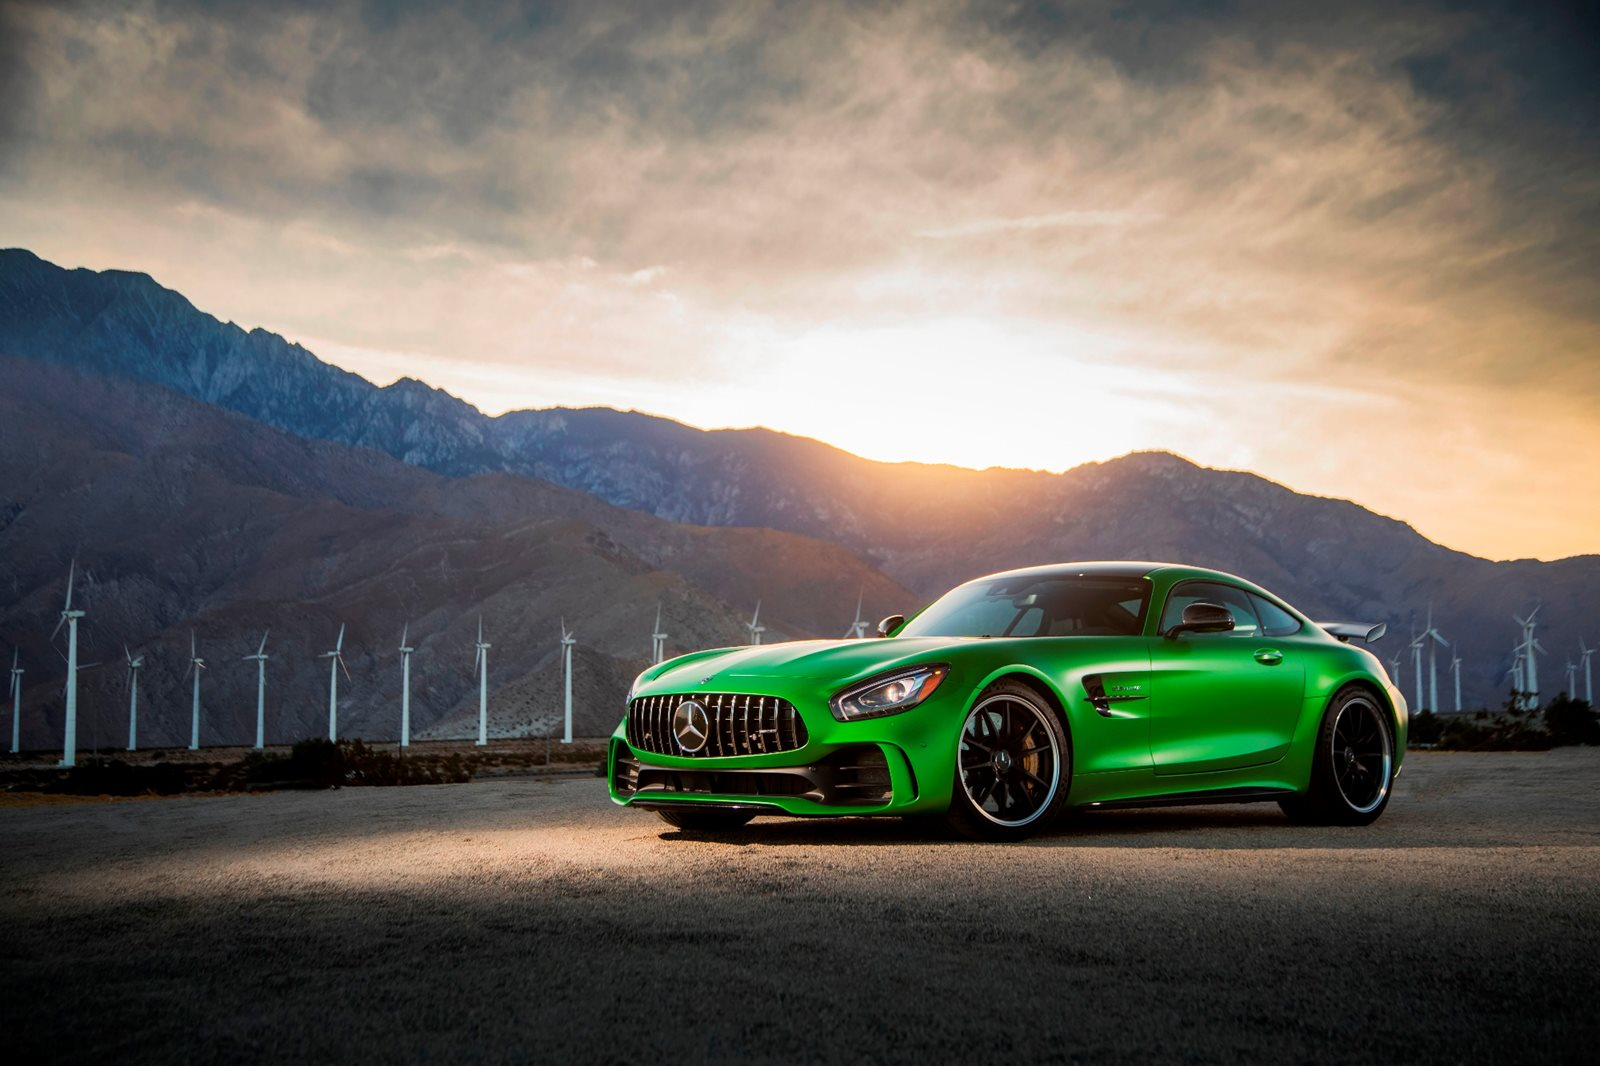 2018 mercedes amg gt r review trims specs and price carbuzz. Black Bedroom Furniture Sets. Home Design Ideas